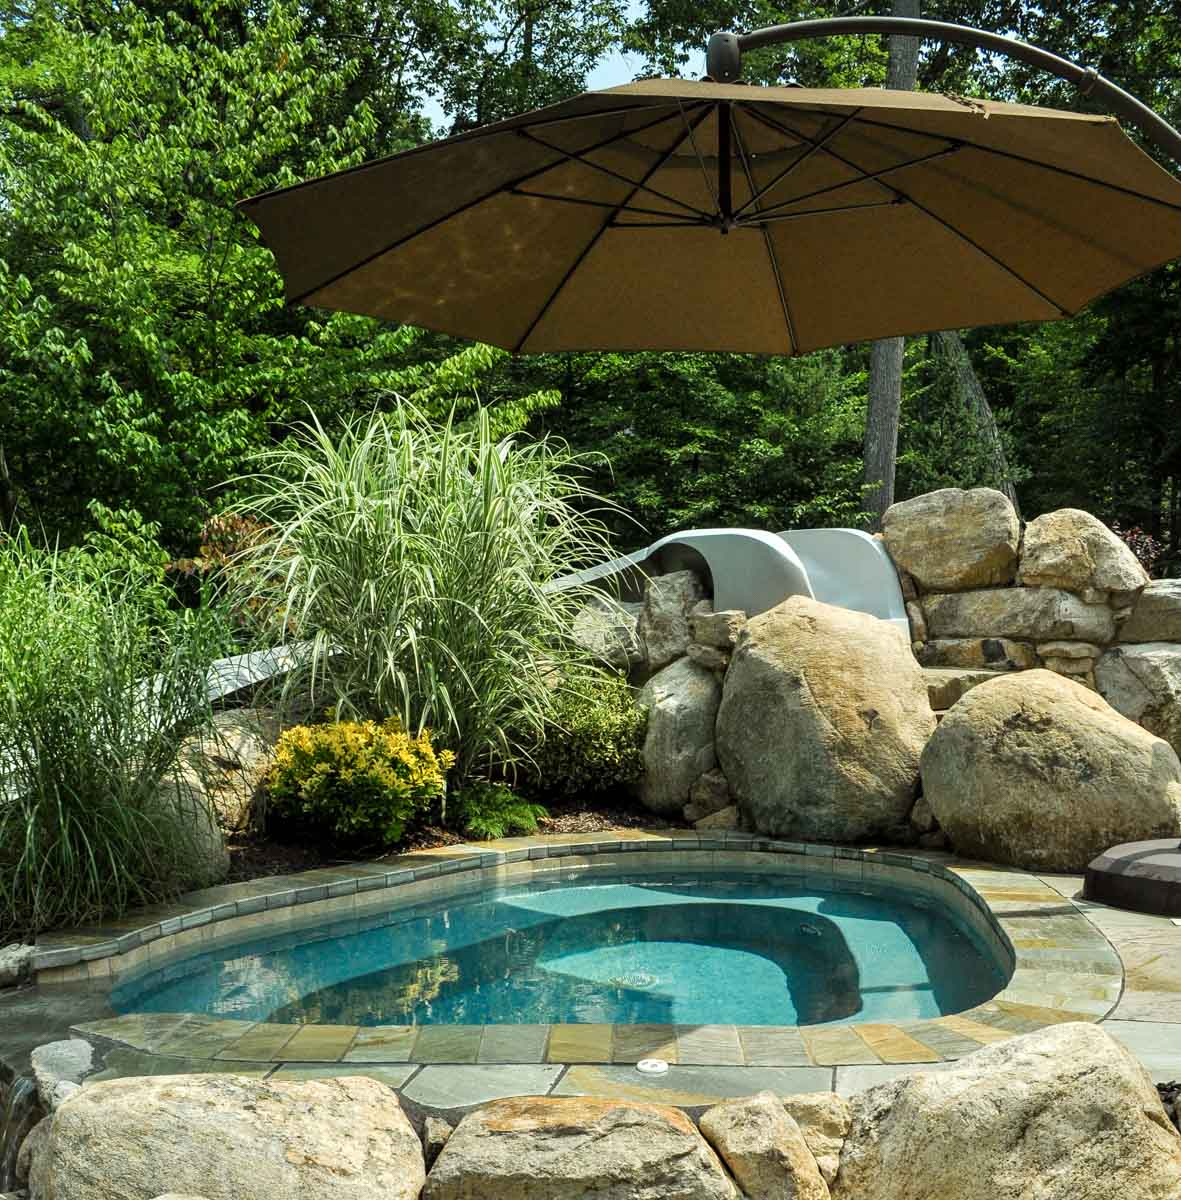 spa with umbrella to provide shade